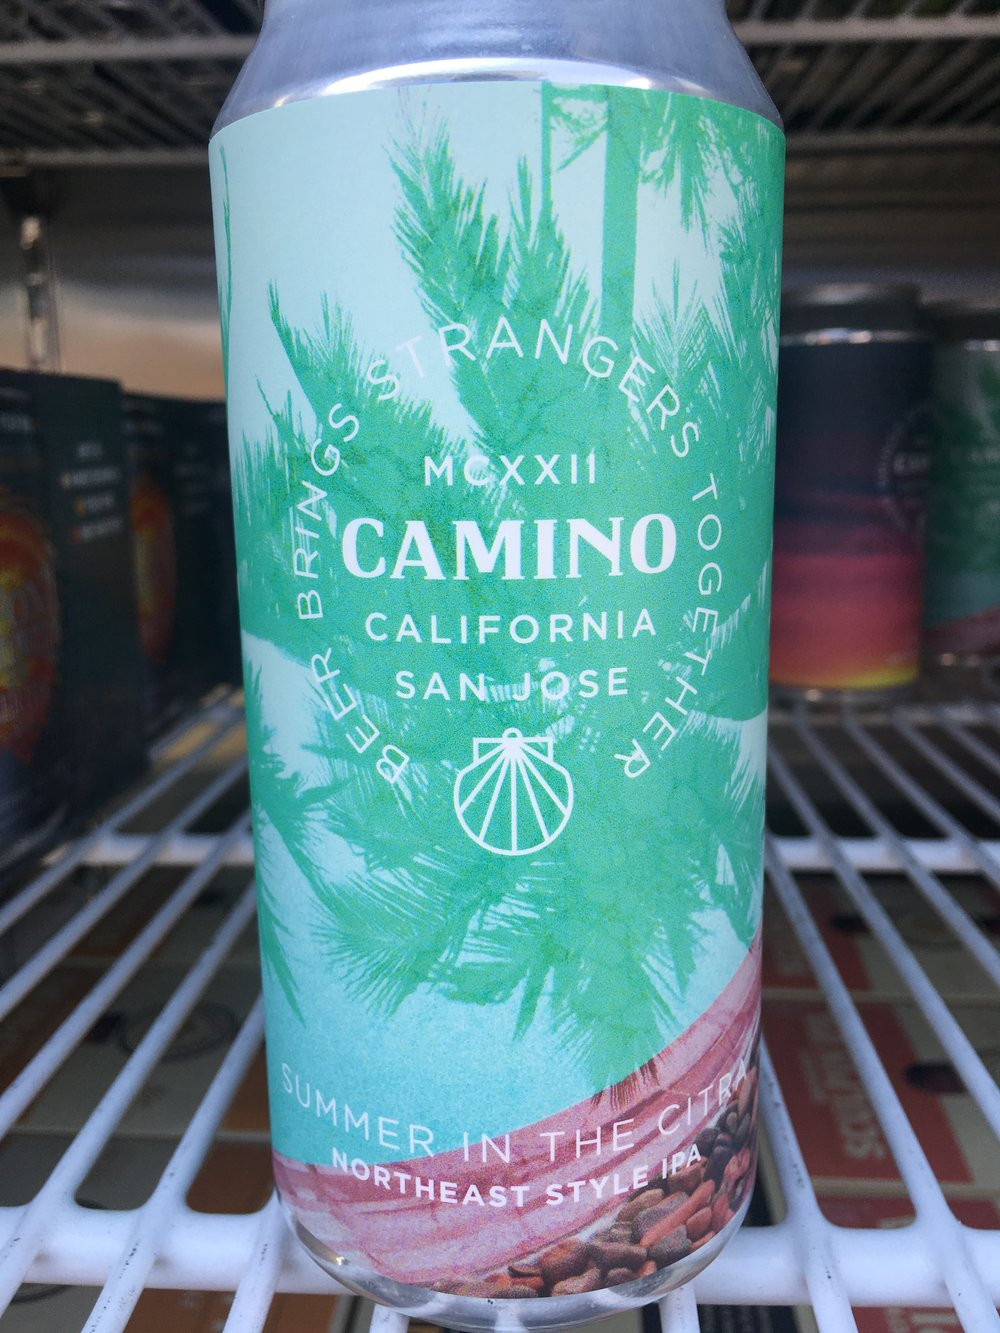 Camino Brewing - Summer in the Citra IPA